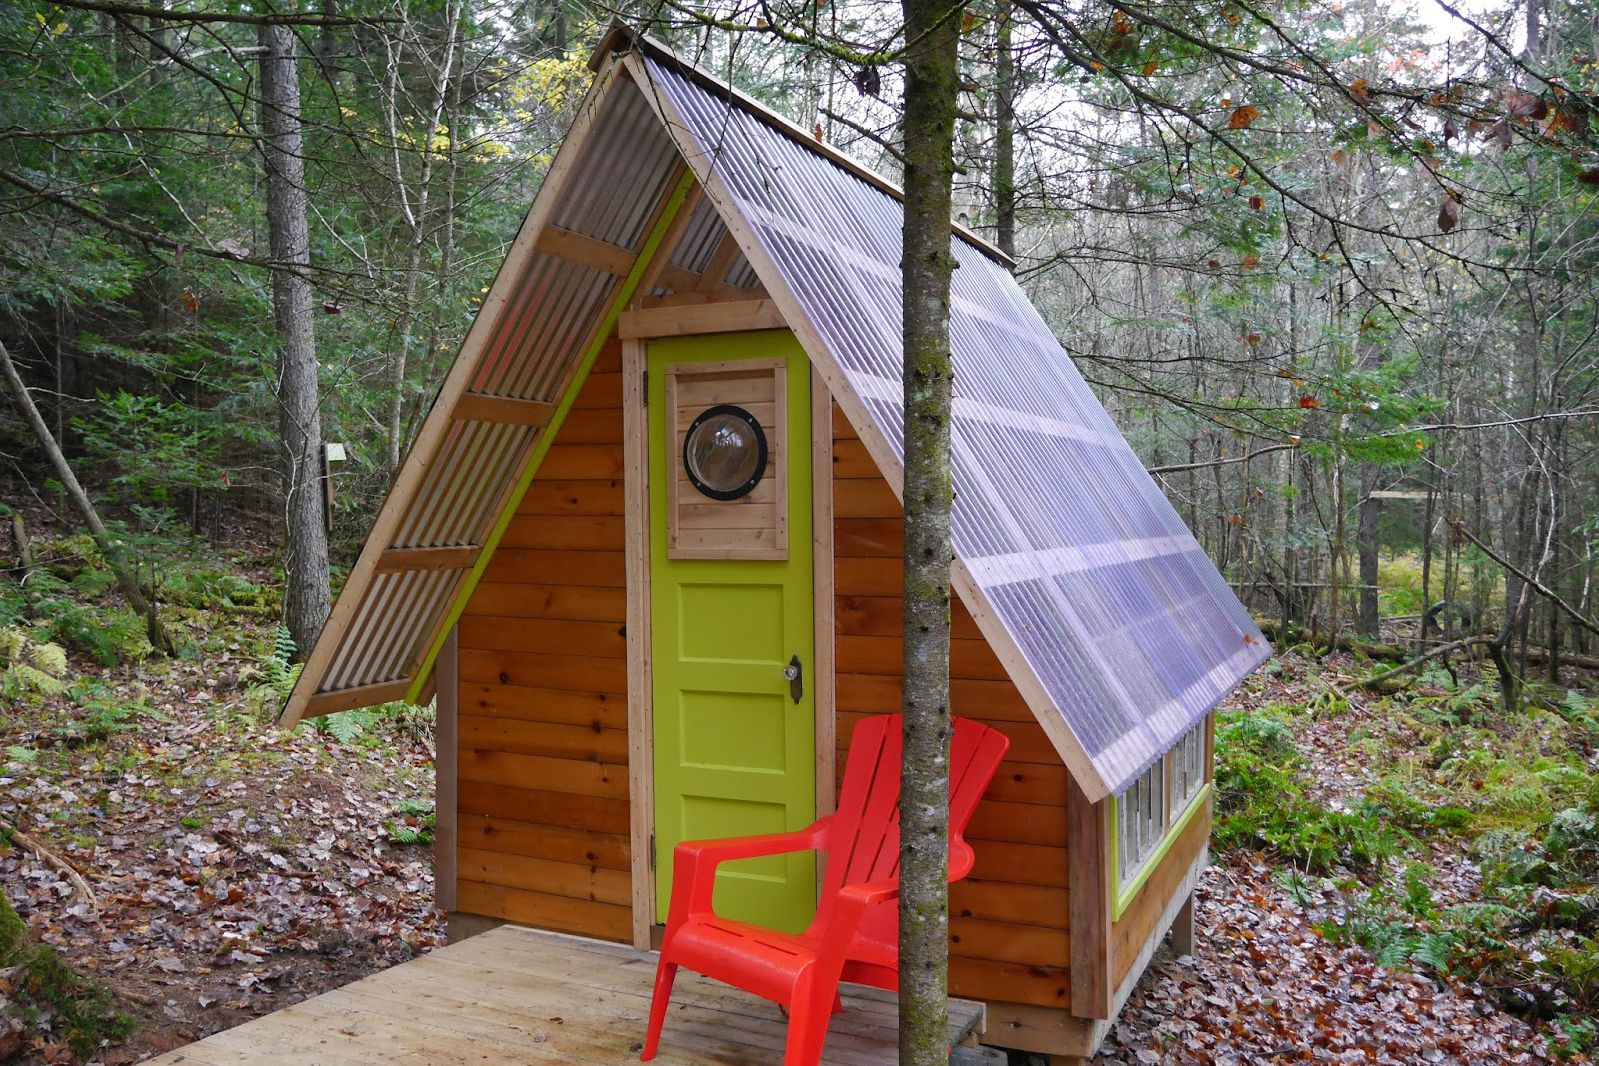 Magnificent 18 Small Cabins You Can Diy Or Buy For 300 And Up Home Interior And Landscaping Ologienasavecom